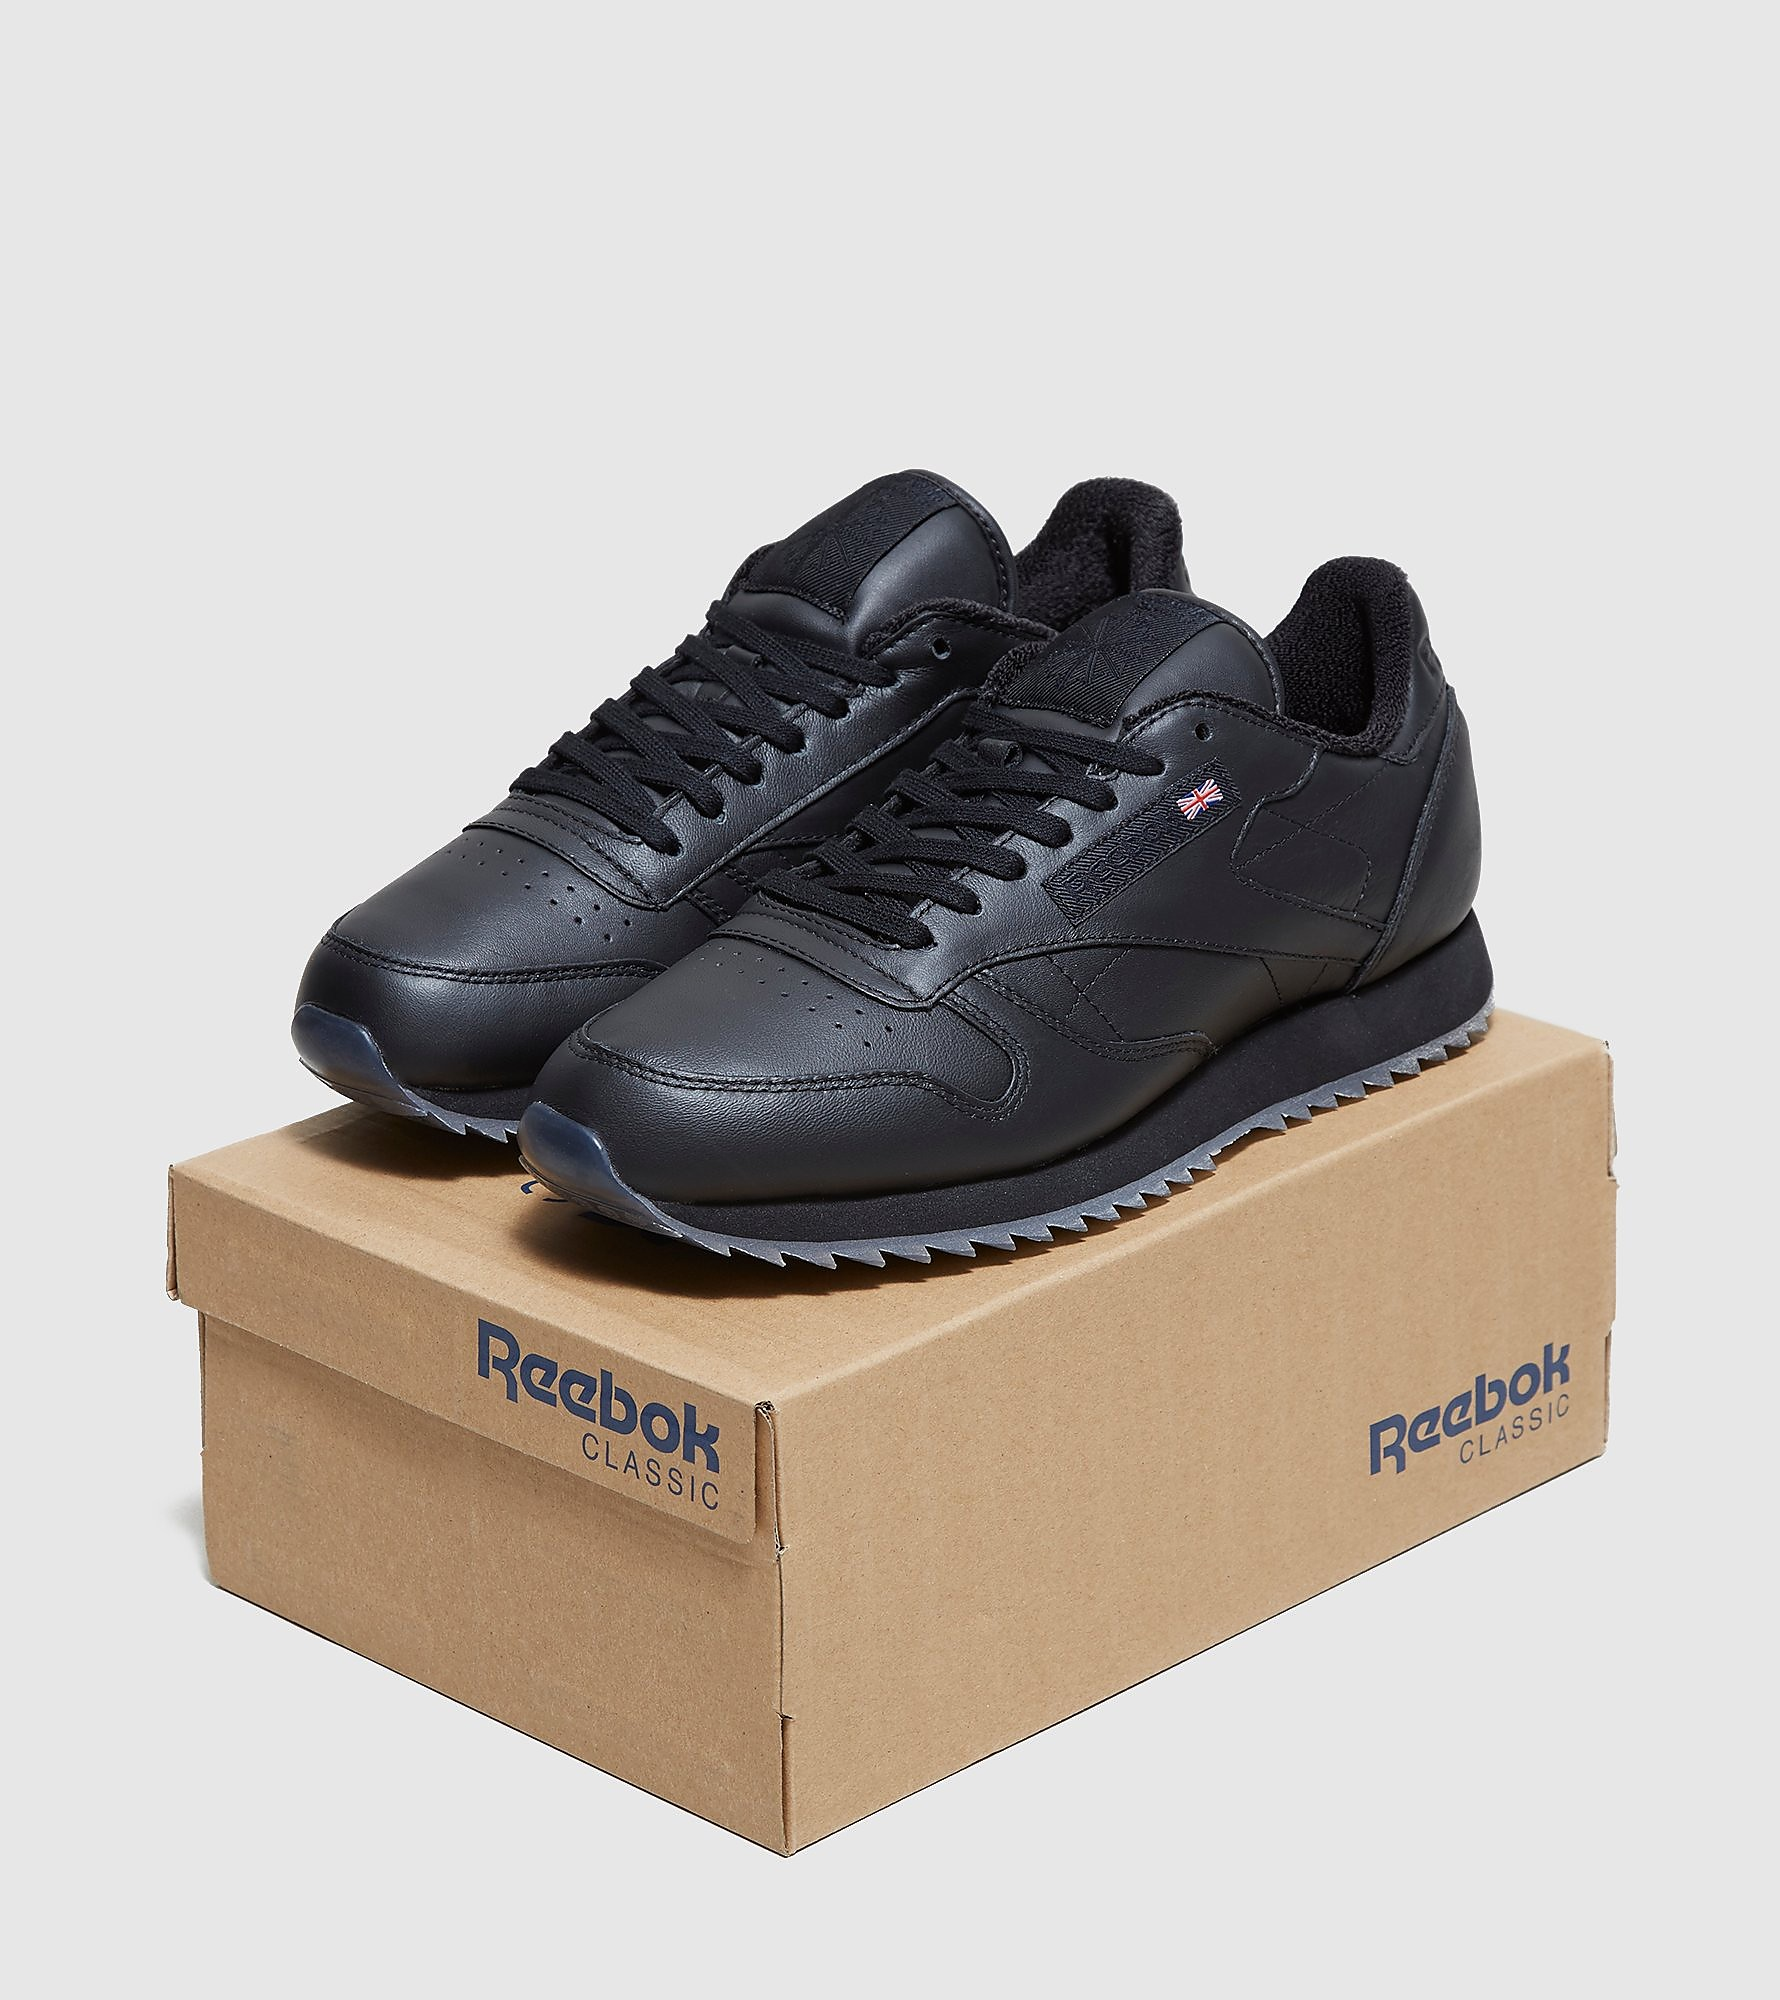 Reebok Classic Leather Ripple Ice Re/Cut- size? Exclusive